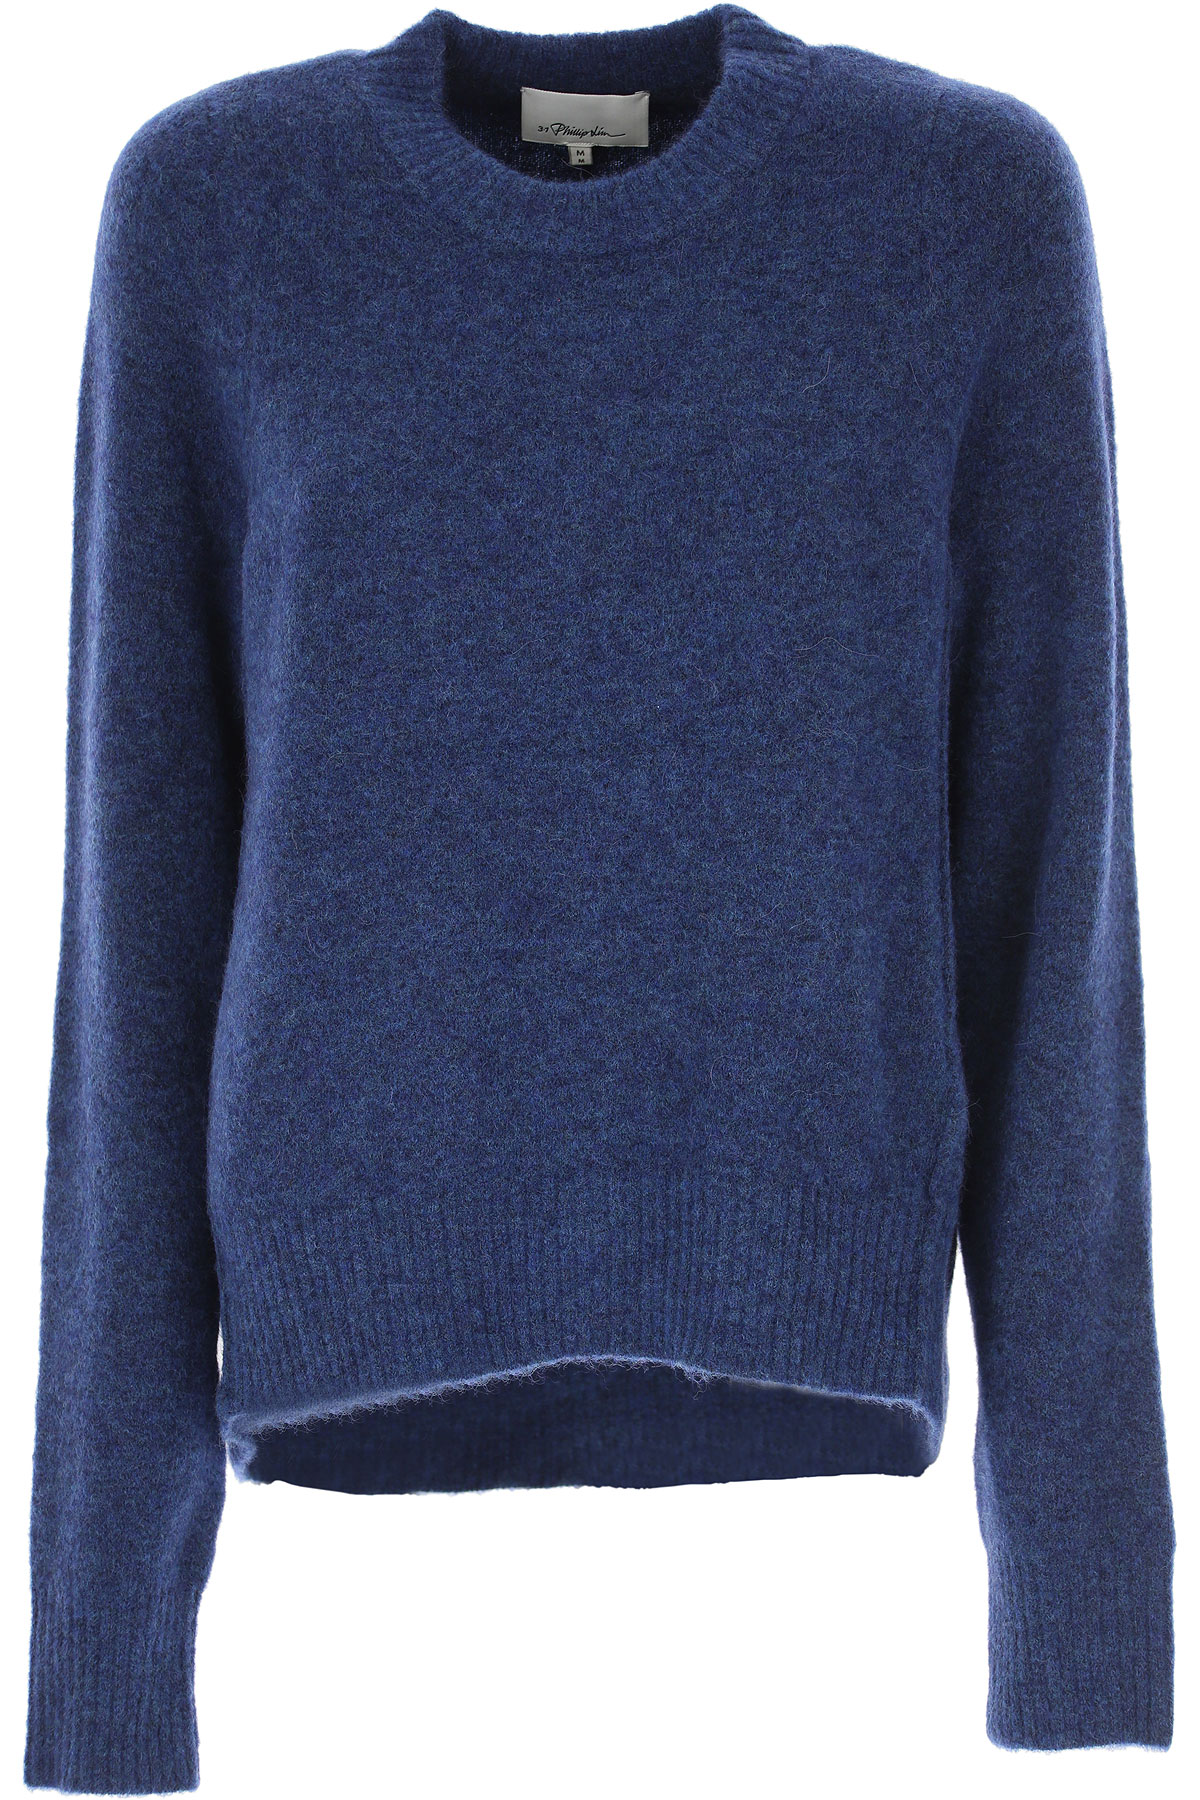 Image of 3.1 PHILLIP LIM Sweater for Women Jumper, Ottanio Blue, polyamide, 2017, 2 4